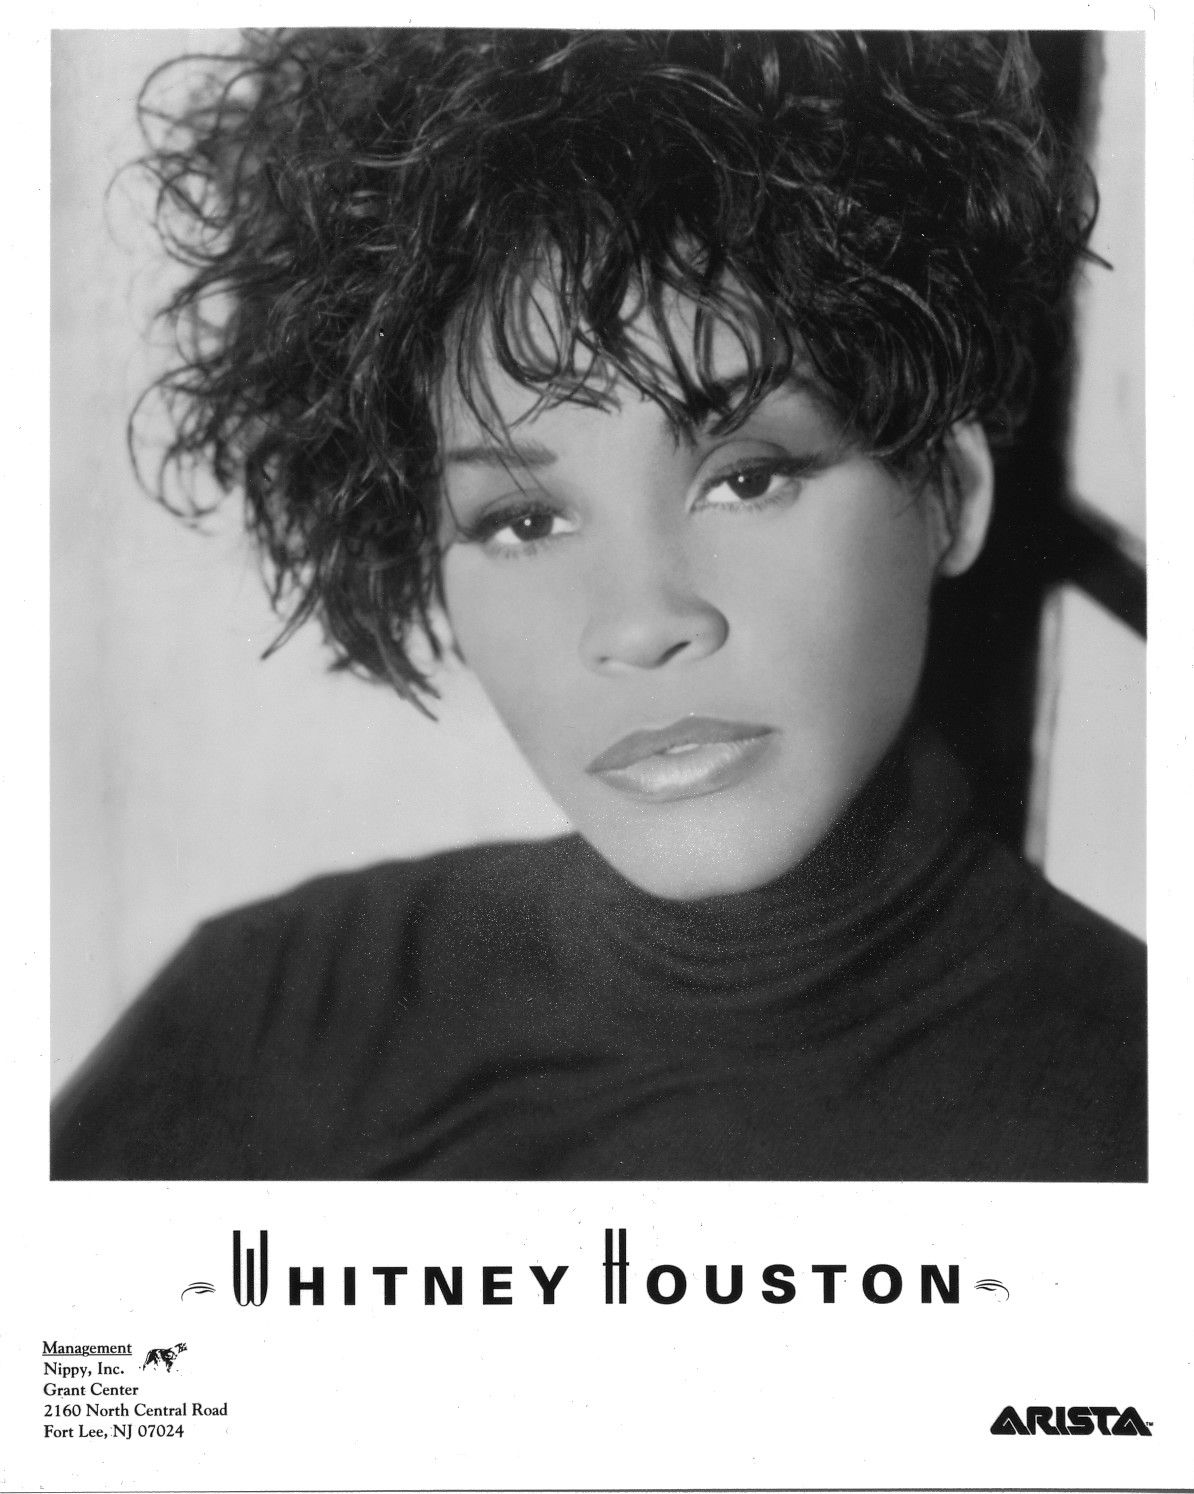 Always remember the good in people. Whitney houston